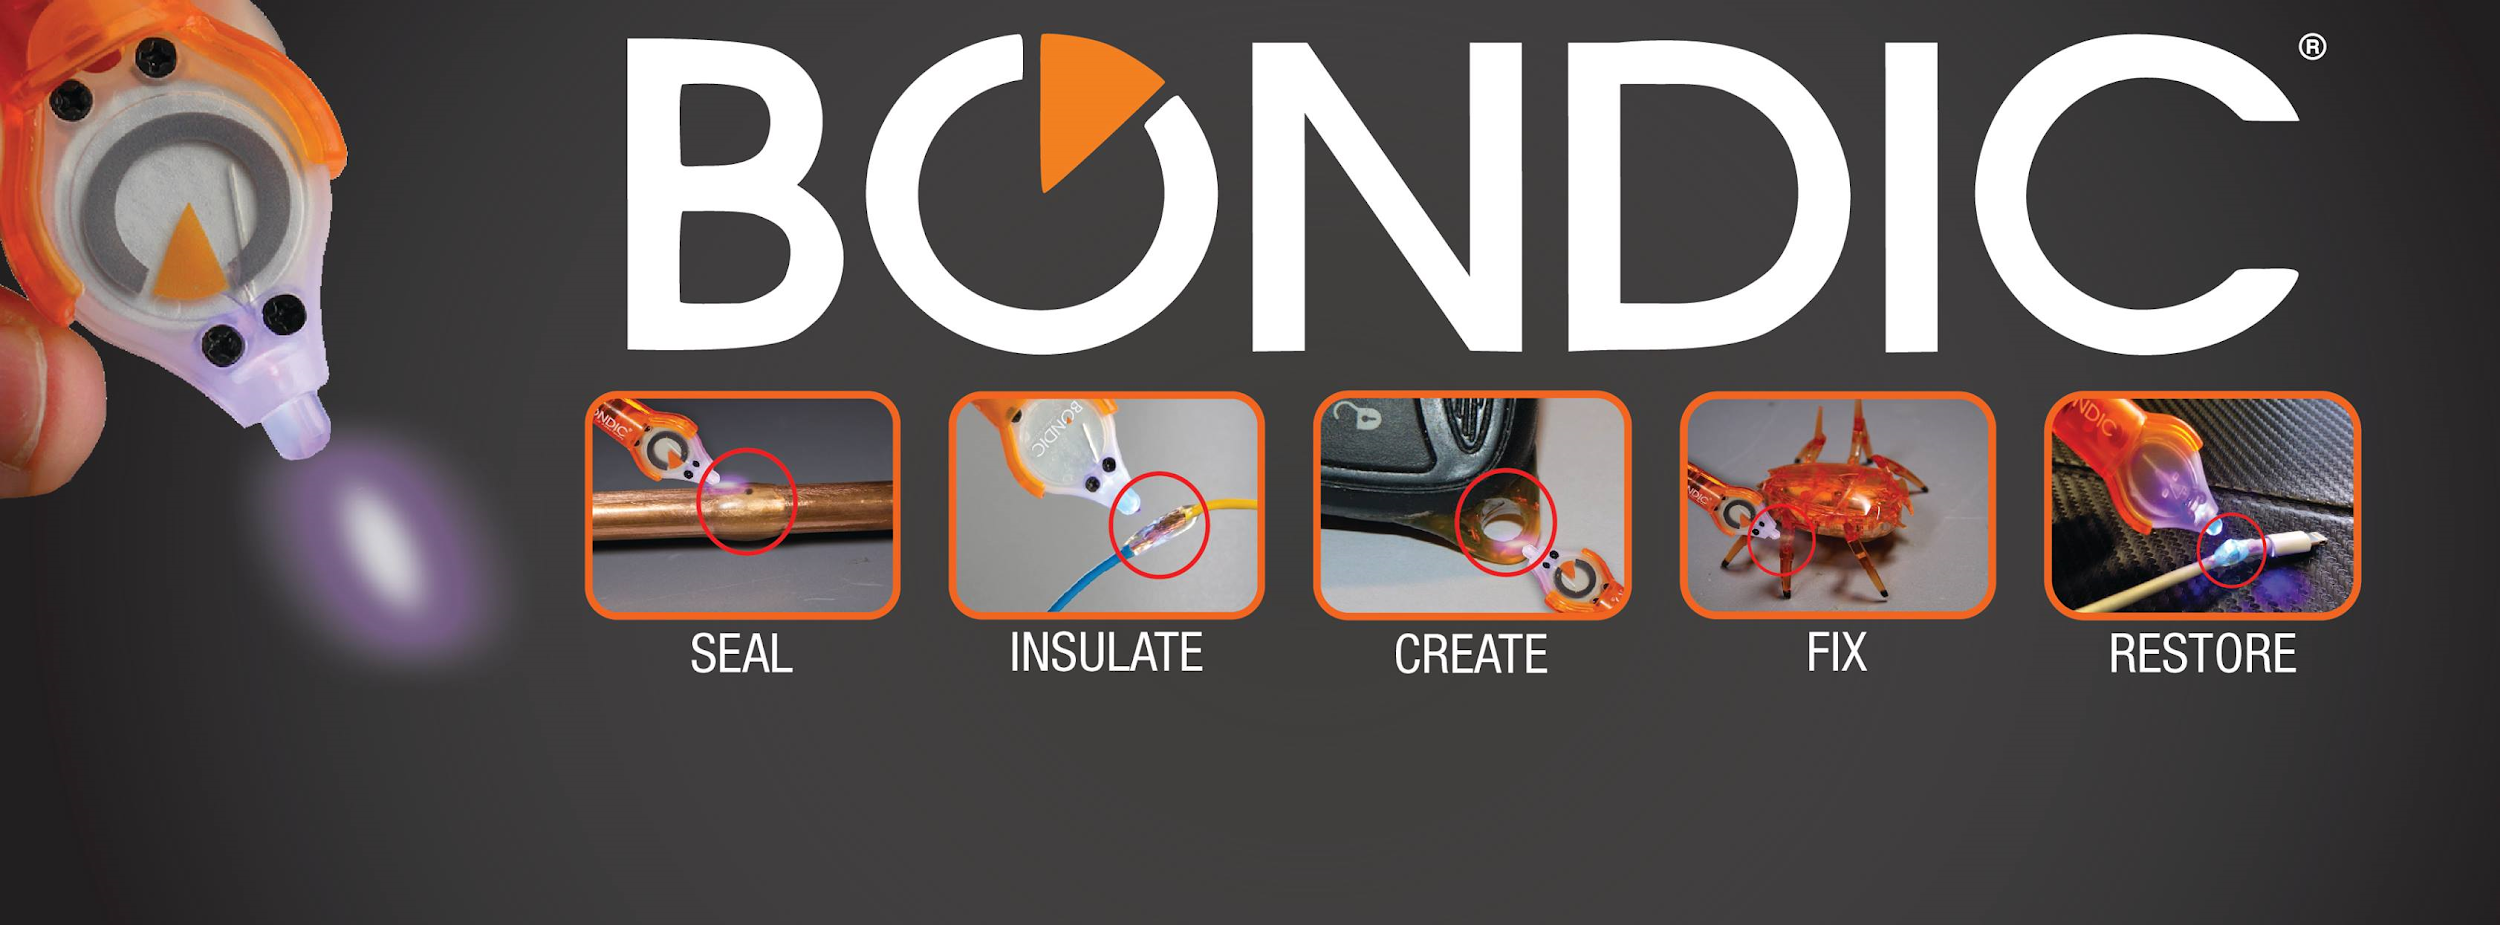 Is Bondic Stronger Than Super Glue